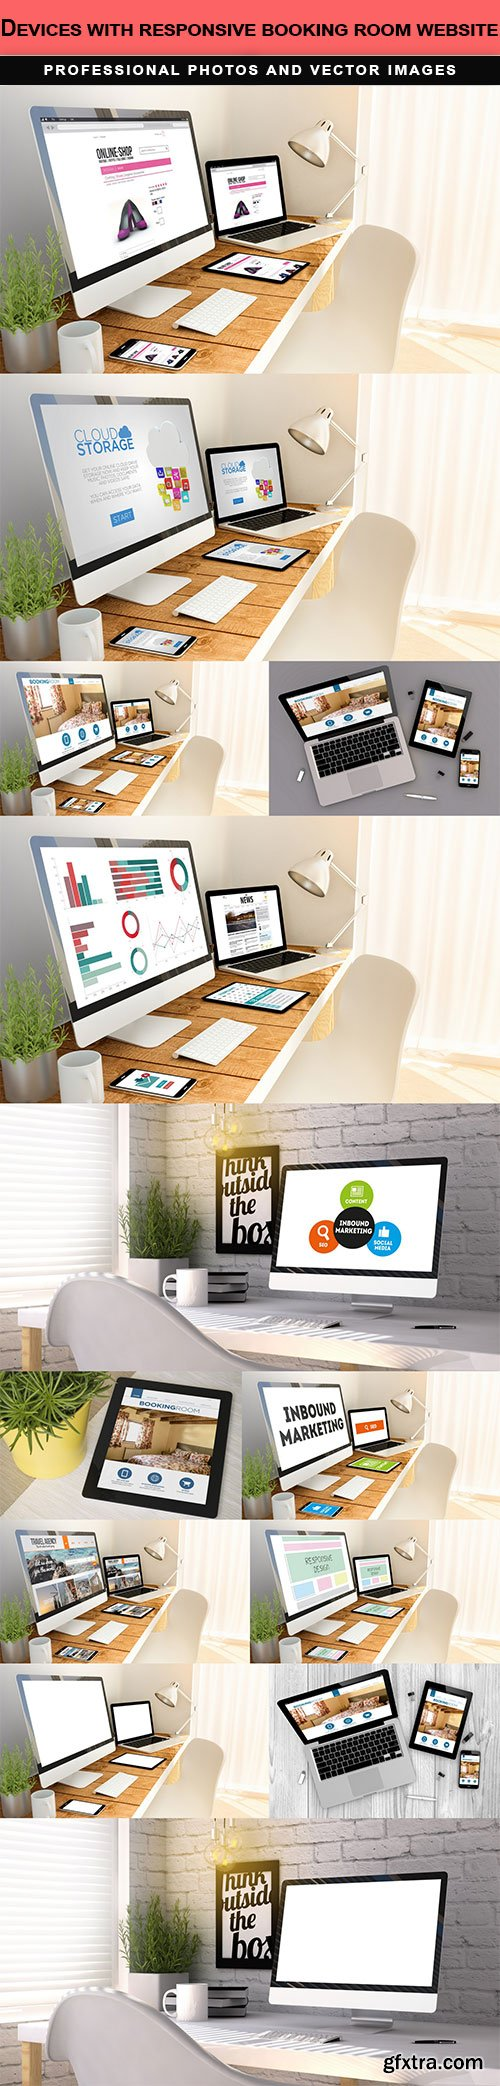 Devices with responsive booking room website